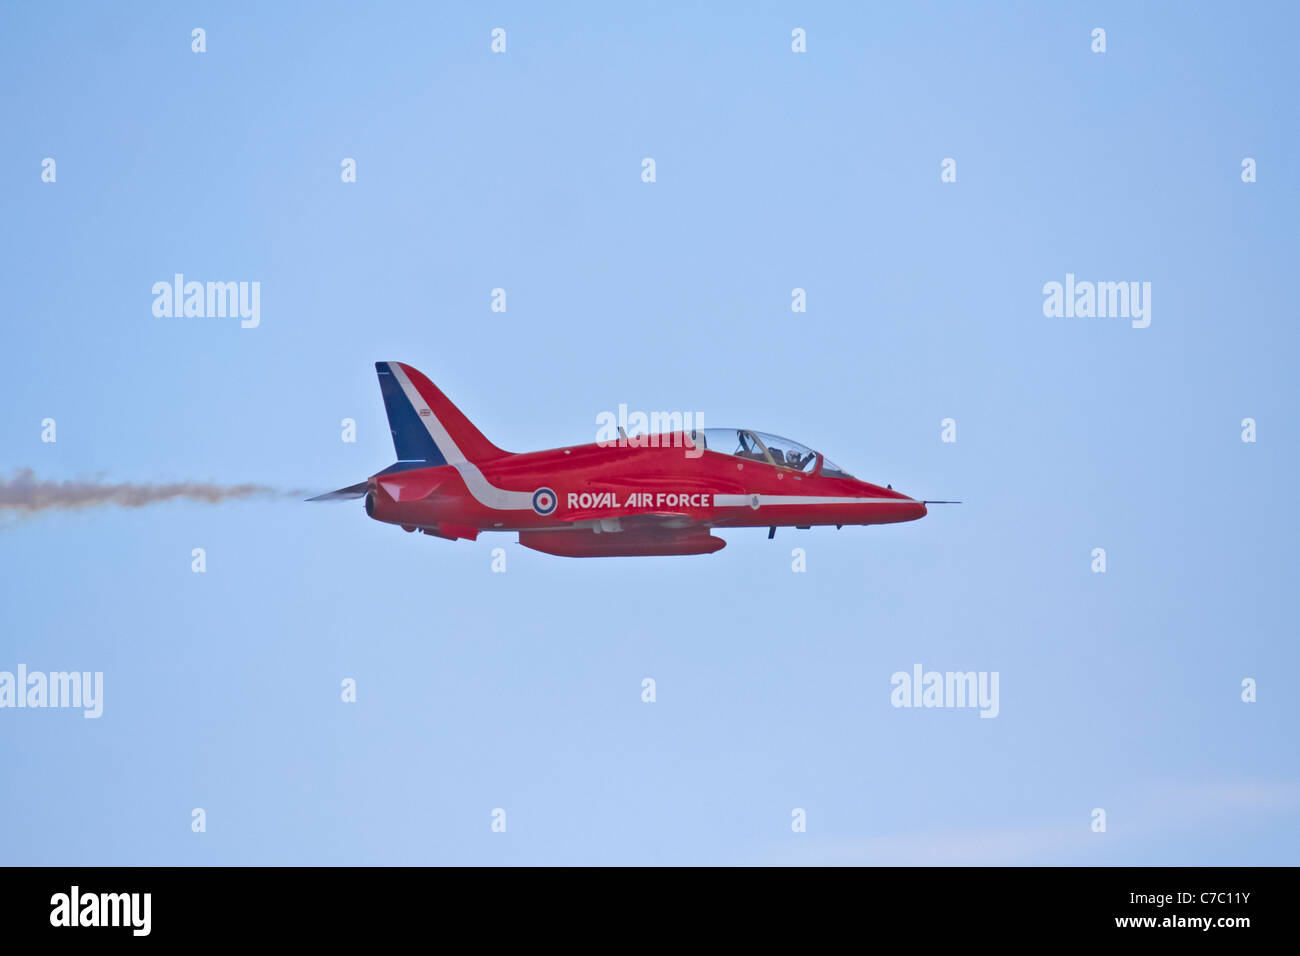 The Royal Air Force aerobatic team the Red Arrows display at Swansea sea show Event - Stock Image